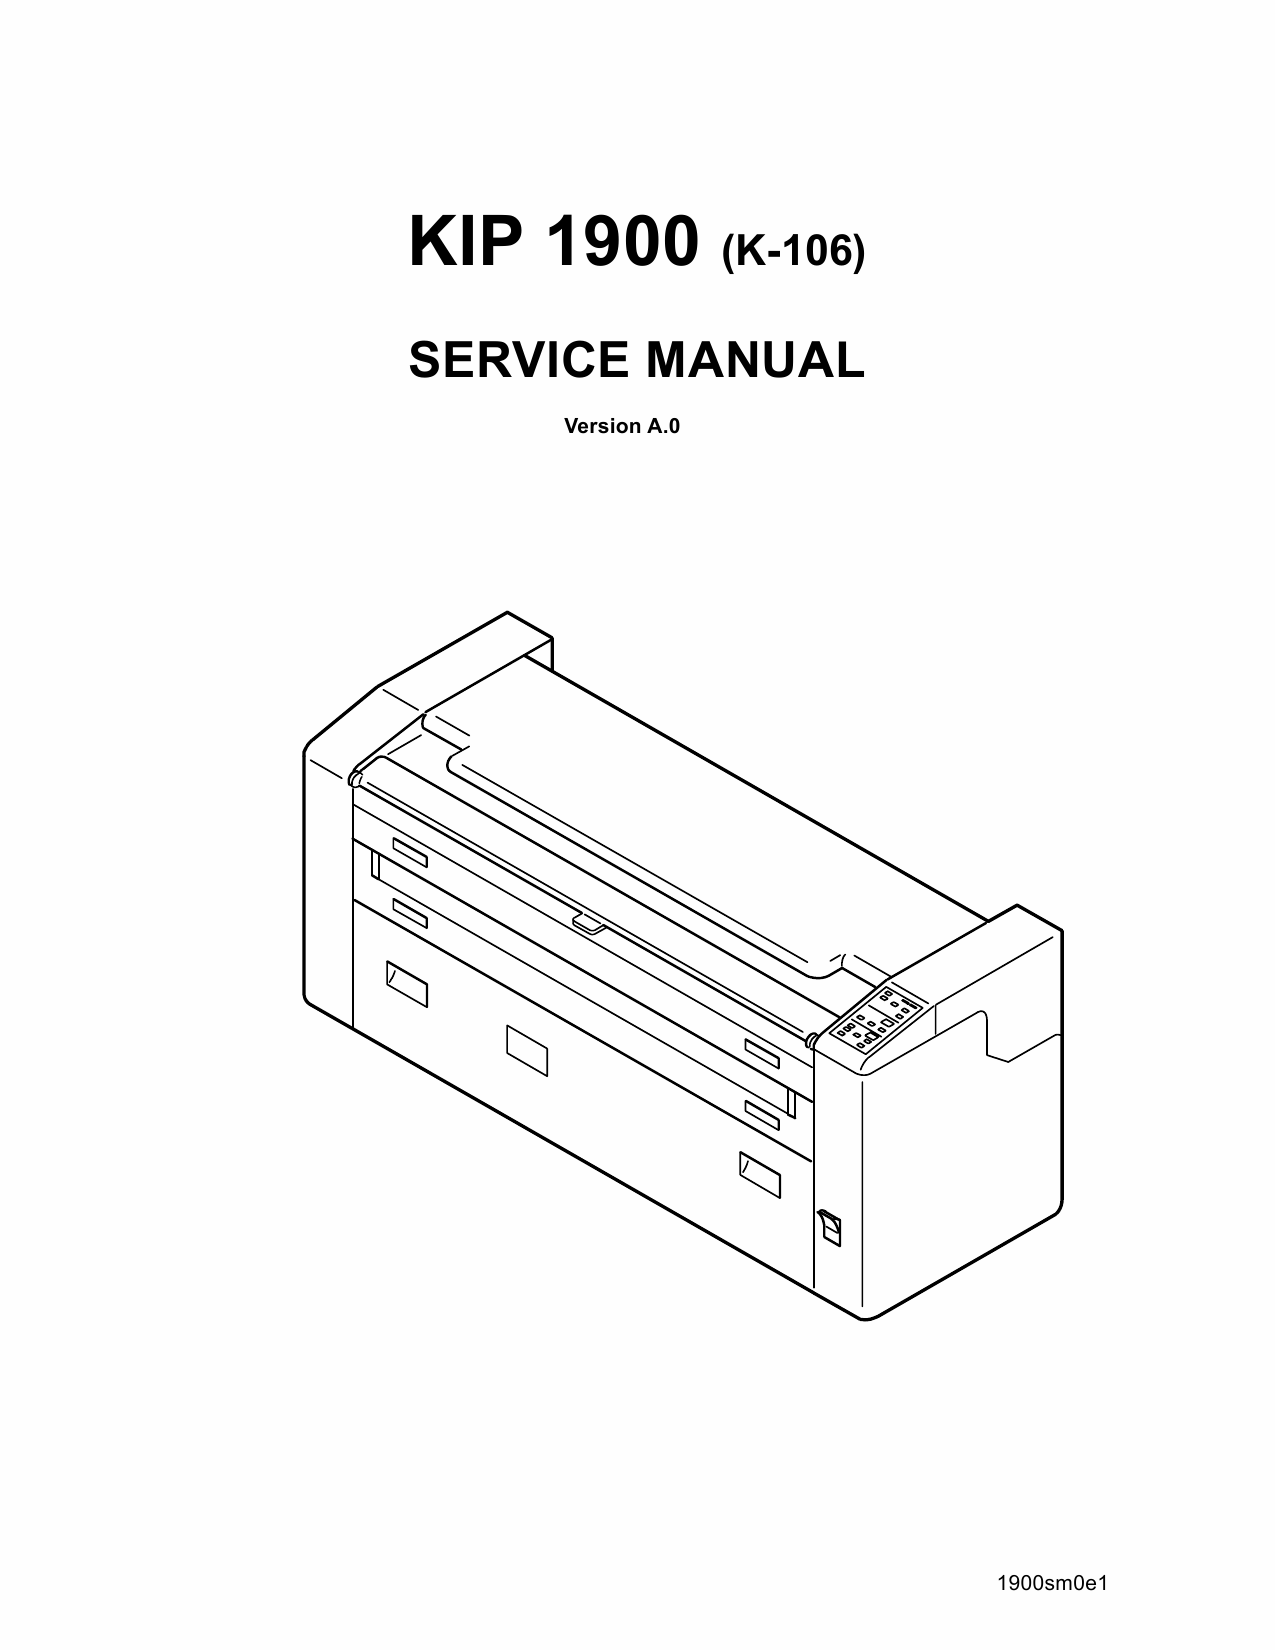 KIP 1900 Parts and Service Manual